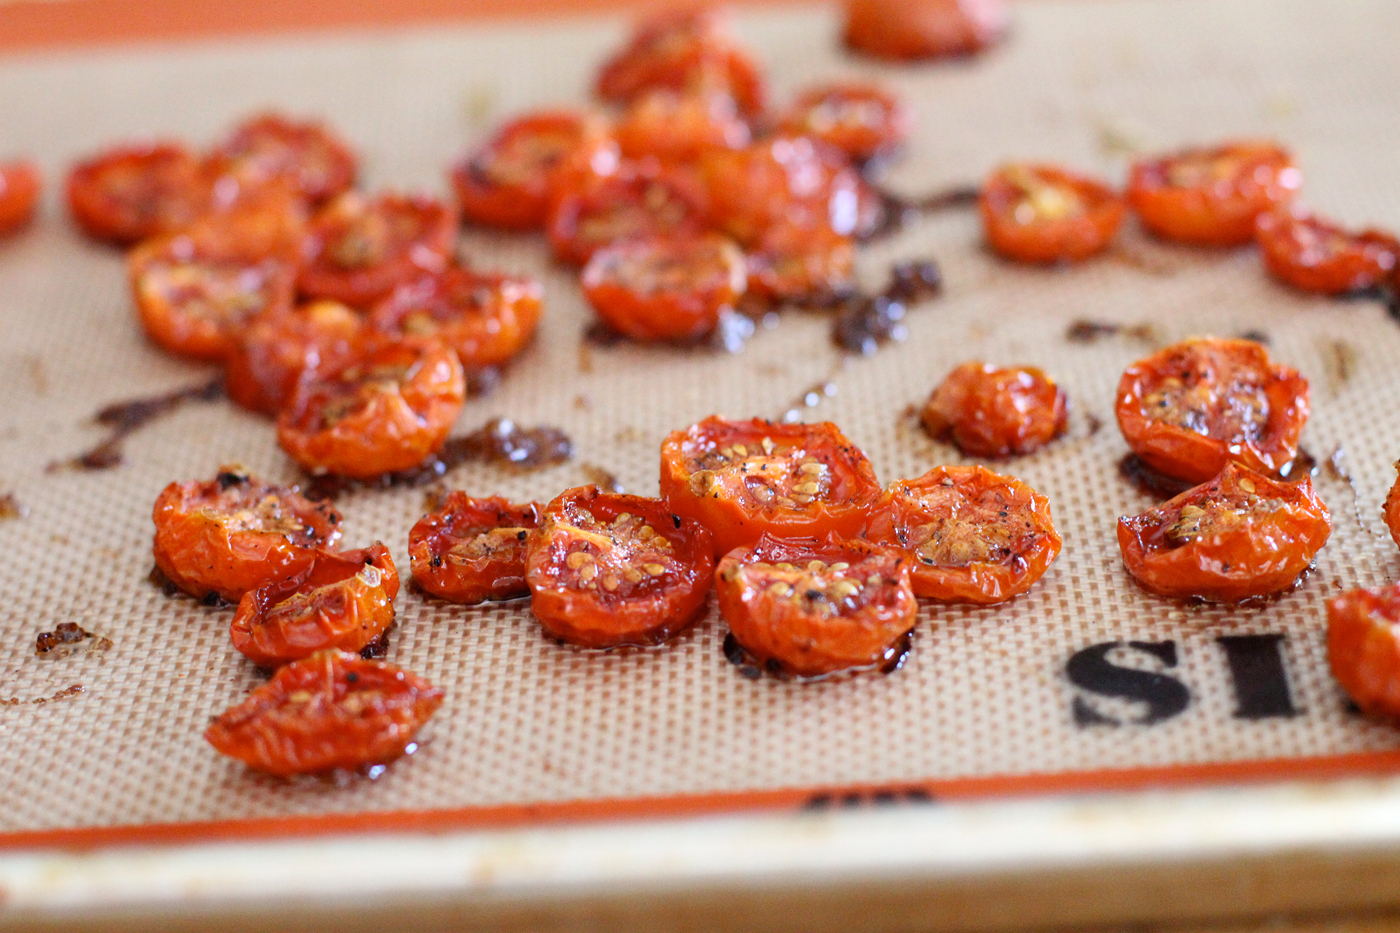 How to bake tomatoes